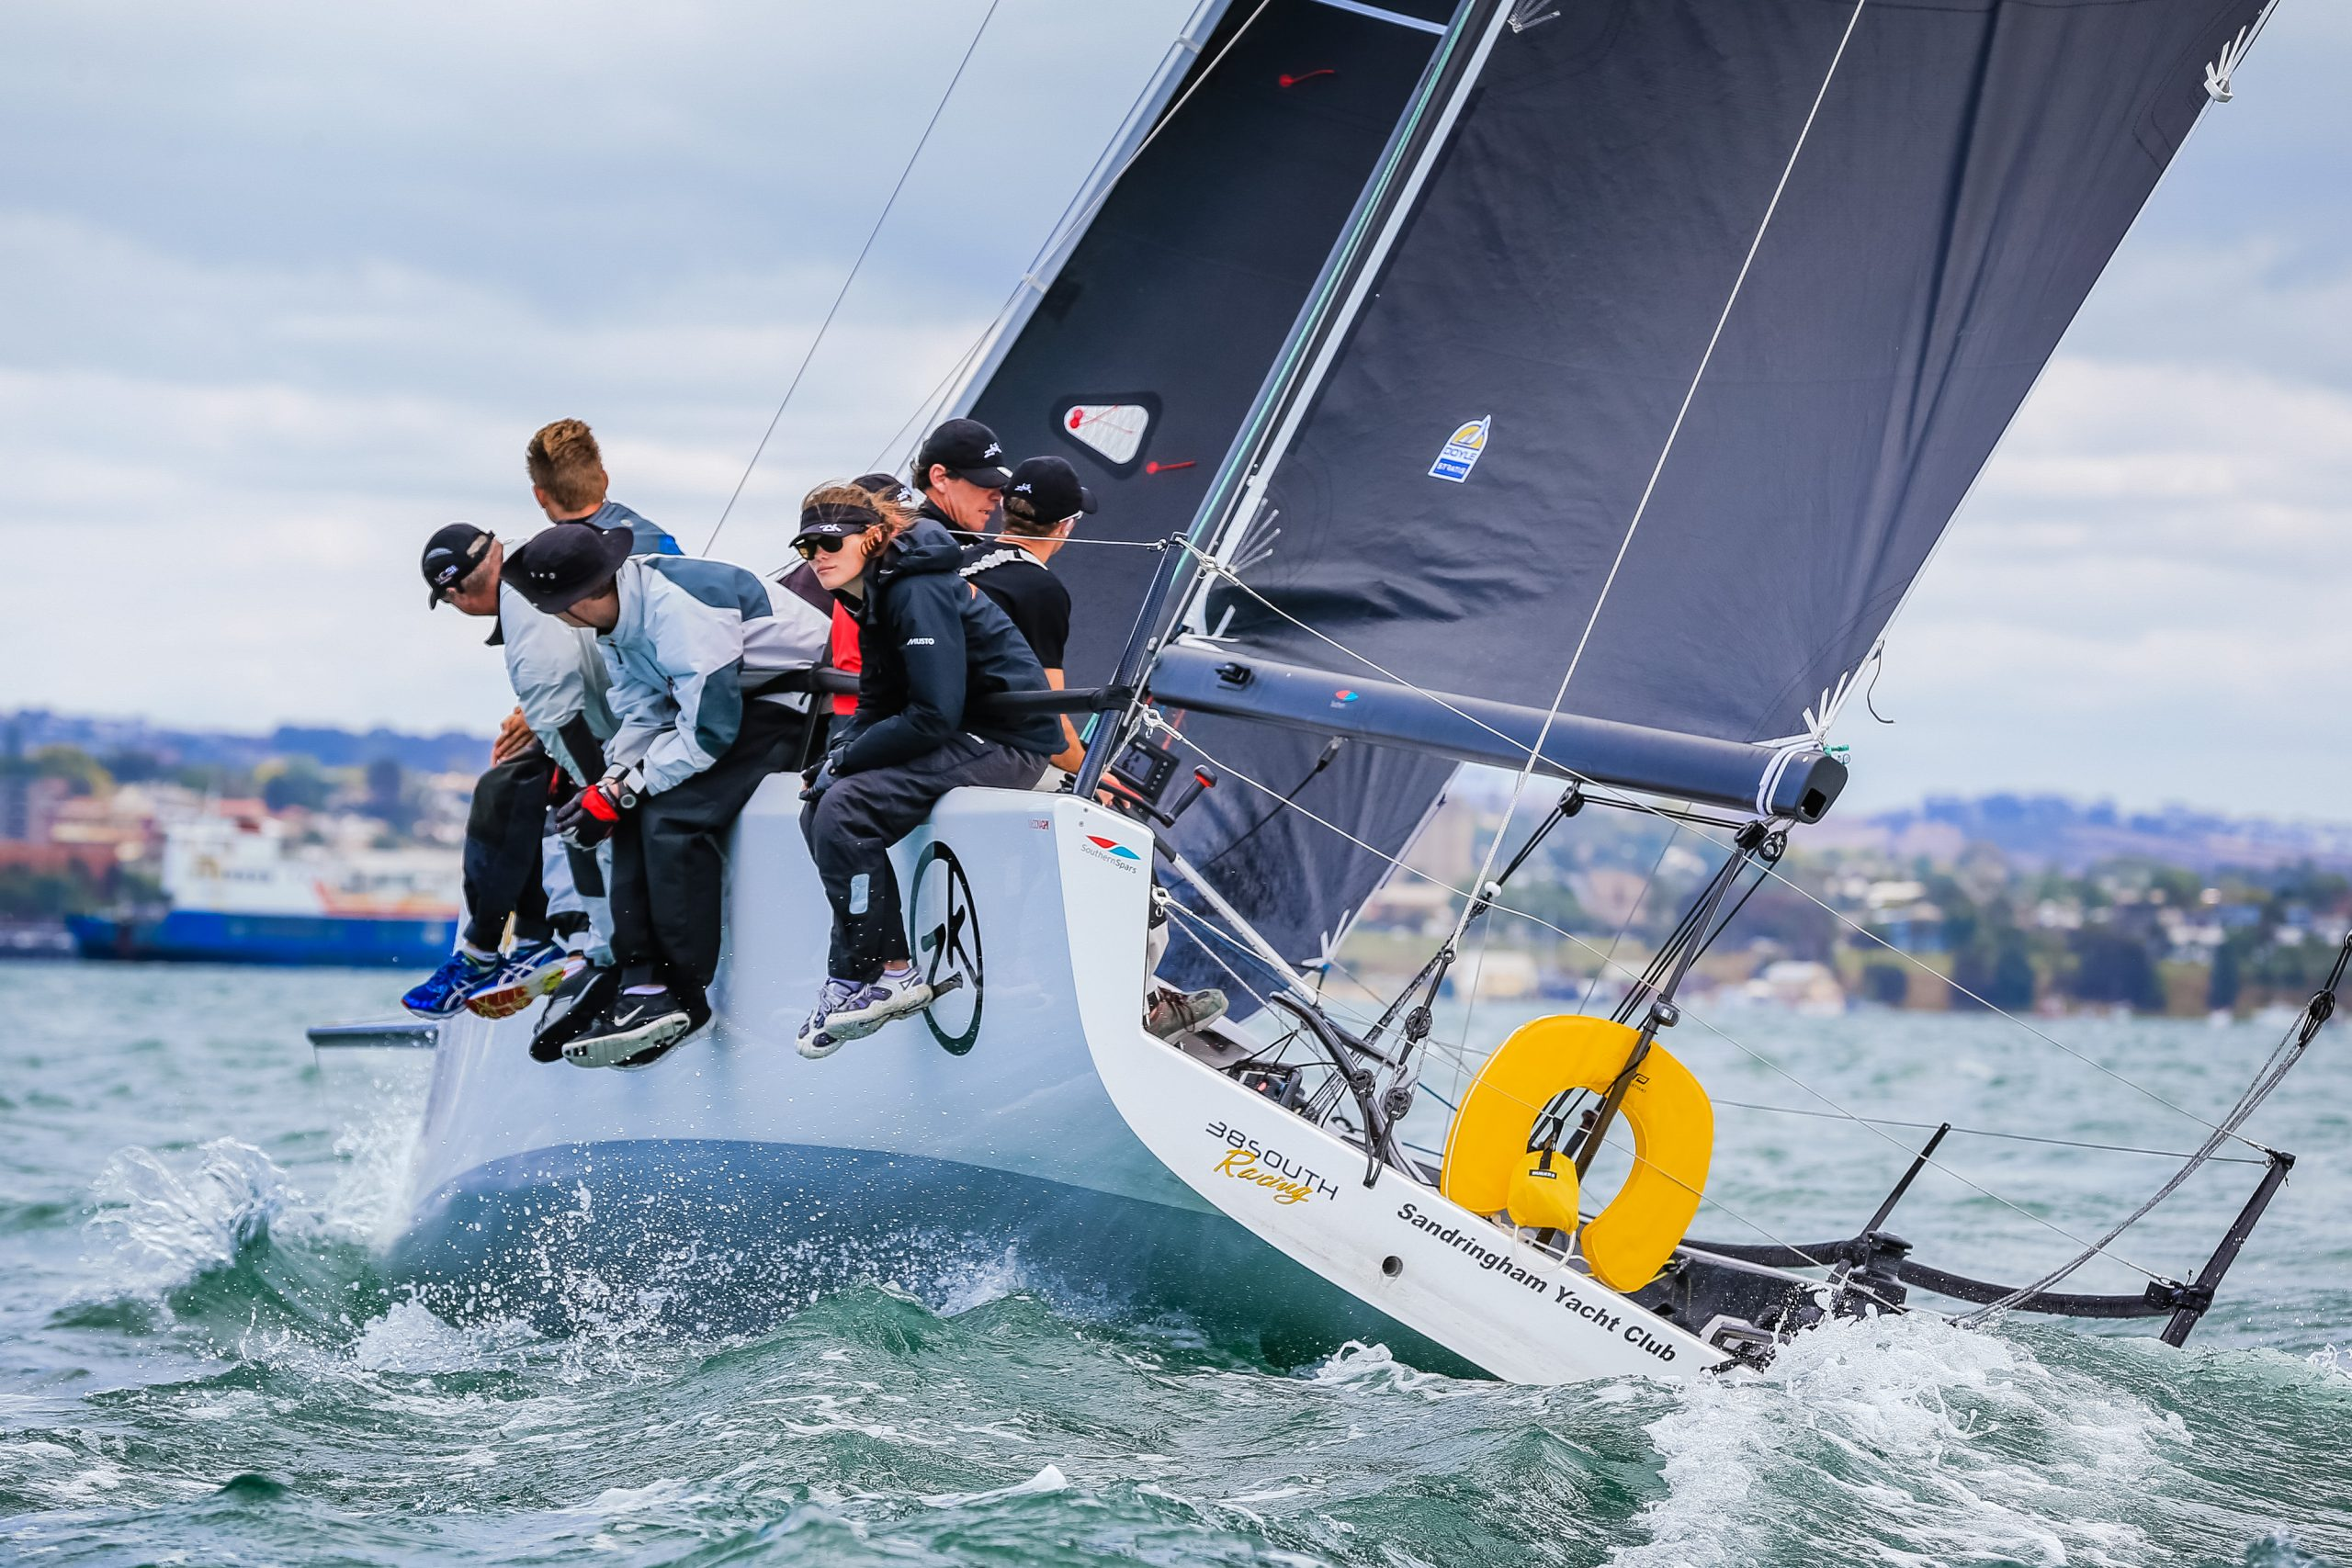 38 South Racing at Festival of Sails. Photo Saltwater Images.